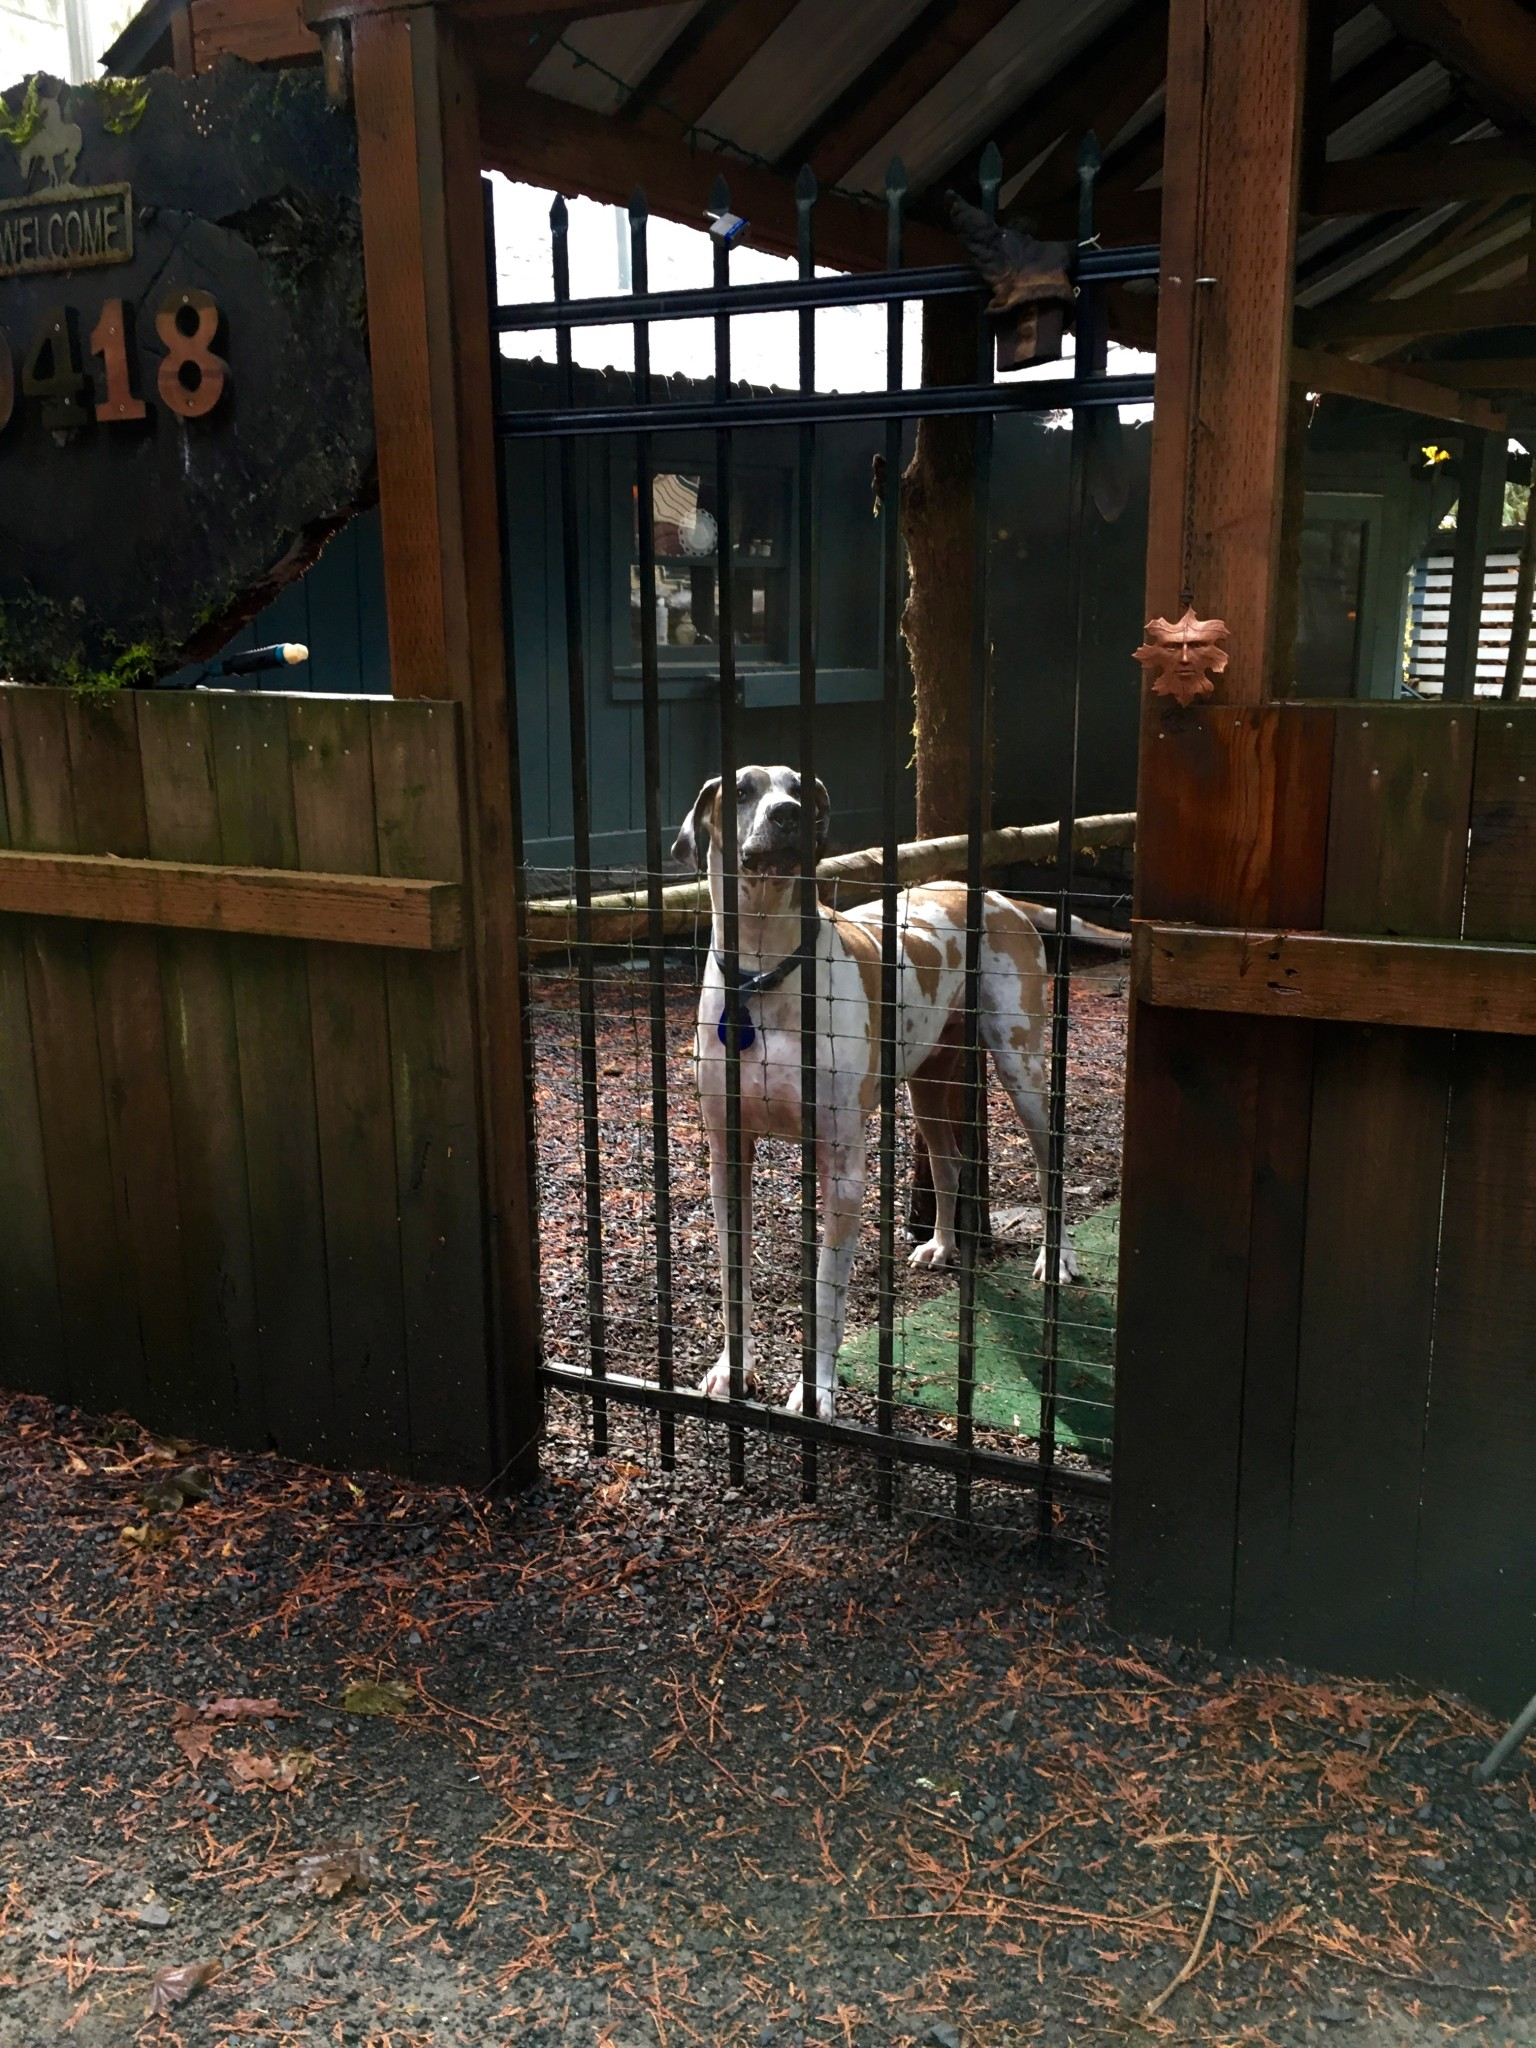 Great Dane behind closed gates--until she was not.